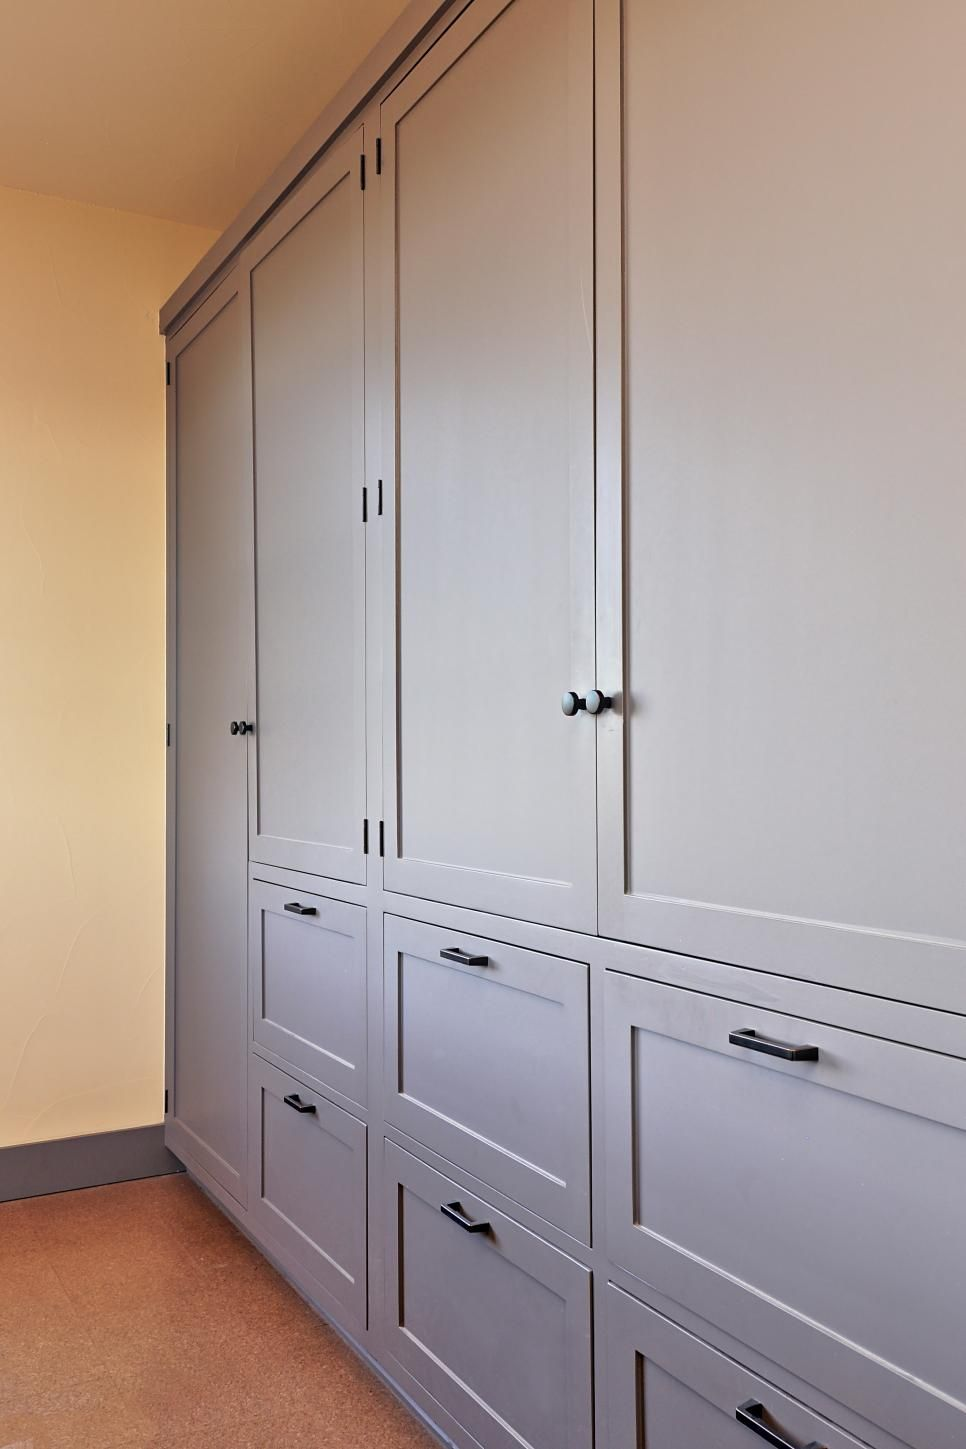 Built In Bedroom Storage Cabinets Bedroom Storage Cabinets Build A Closet Floor To Ceiling Cabinets